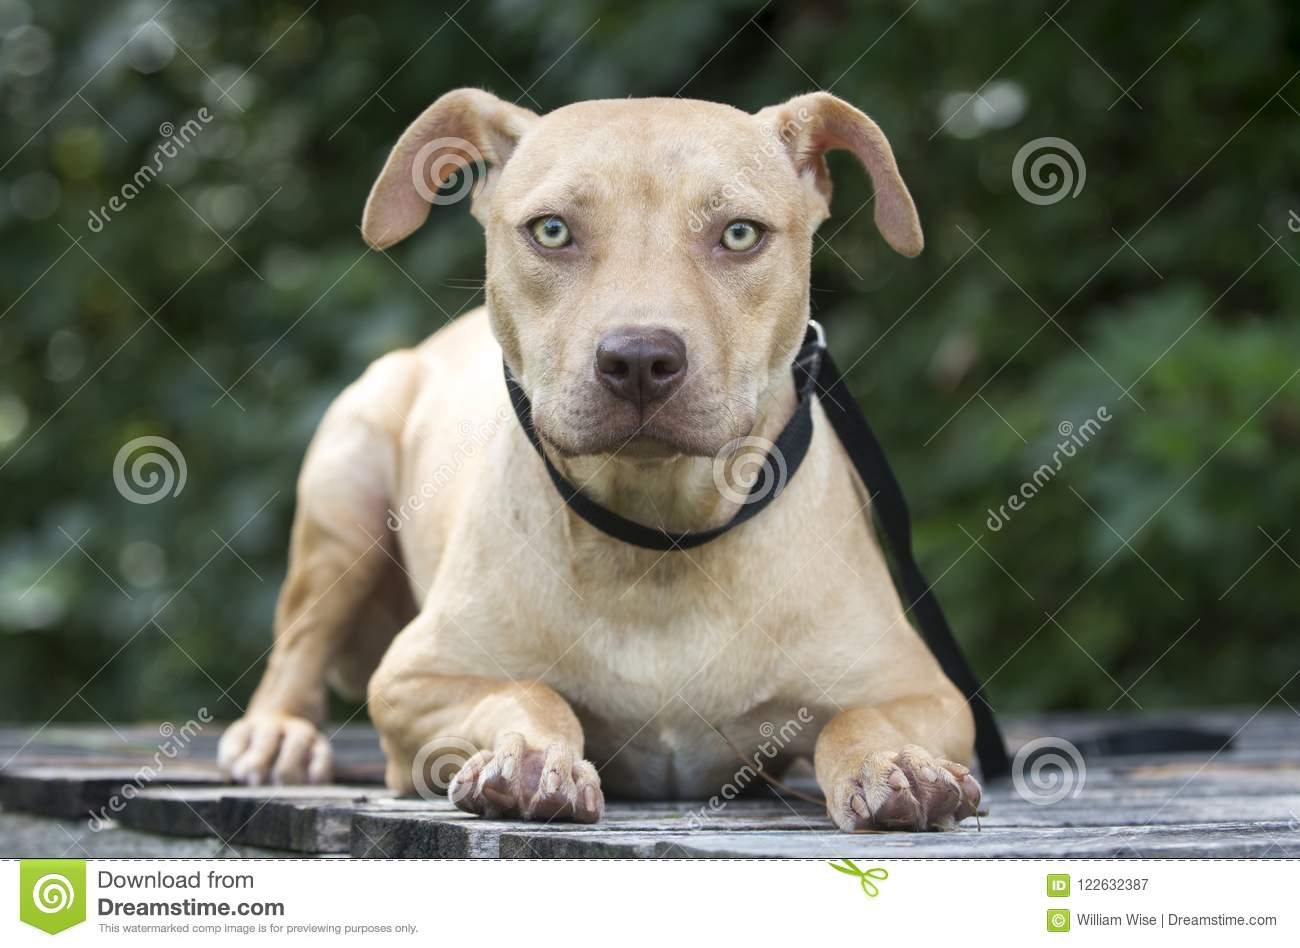 Pitbull Puppy Dog Adoption Portrait Stock Image Image Of Leash